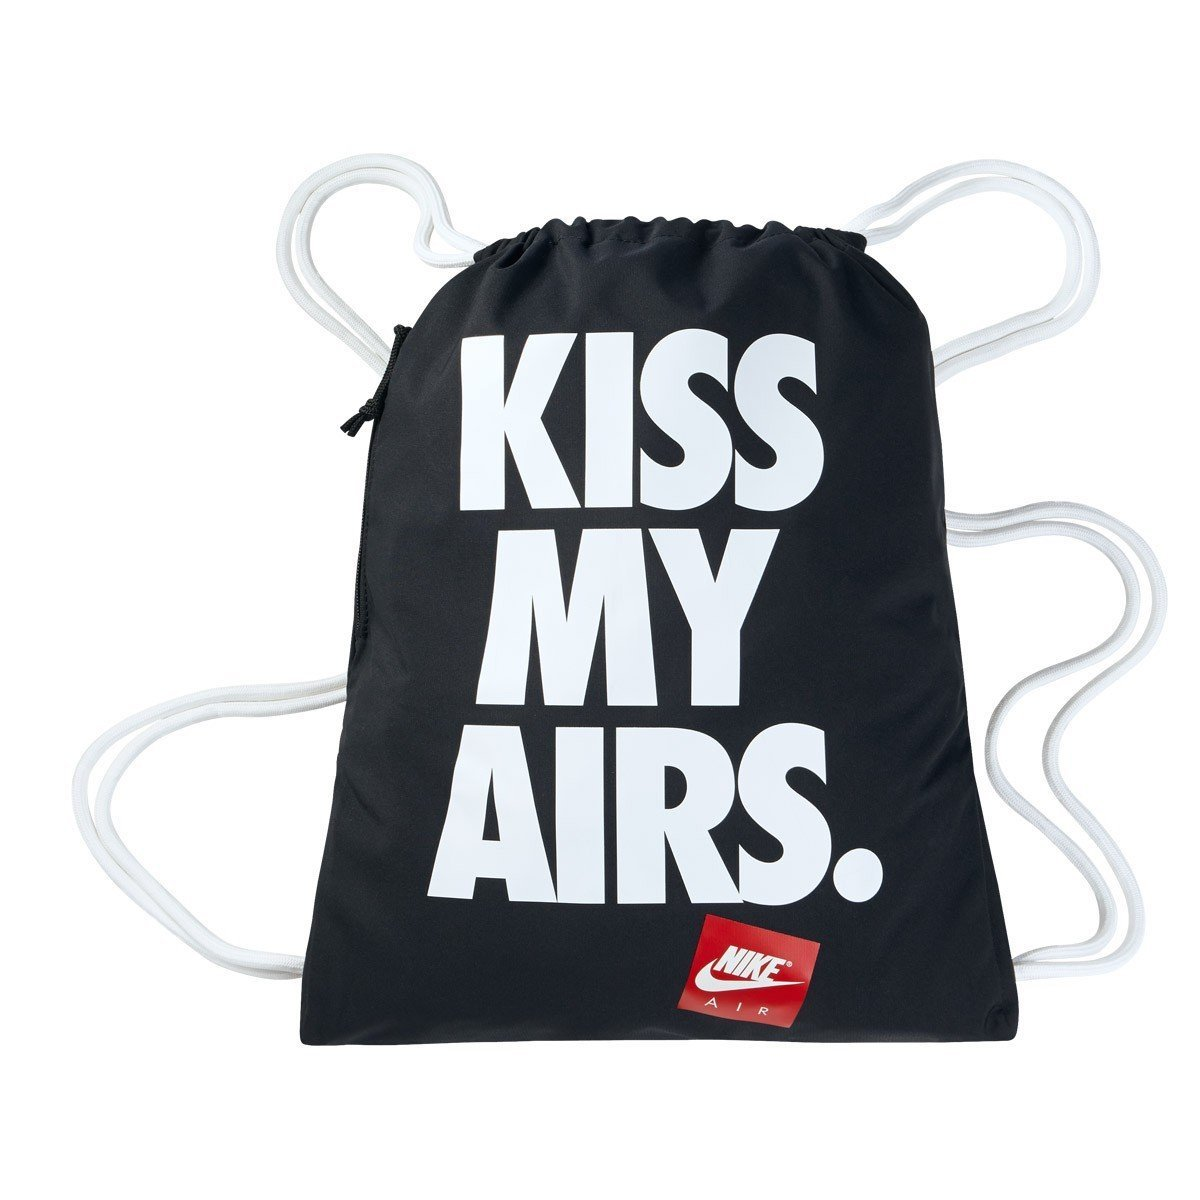 empujoncito ciervo audible  Nike Kiss My Airs Heritage Graphic Gymsack: Amazon.in: Sports, Fitness &  Outdoors